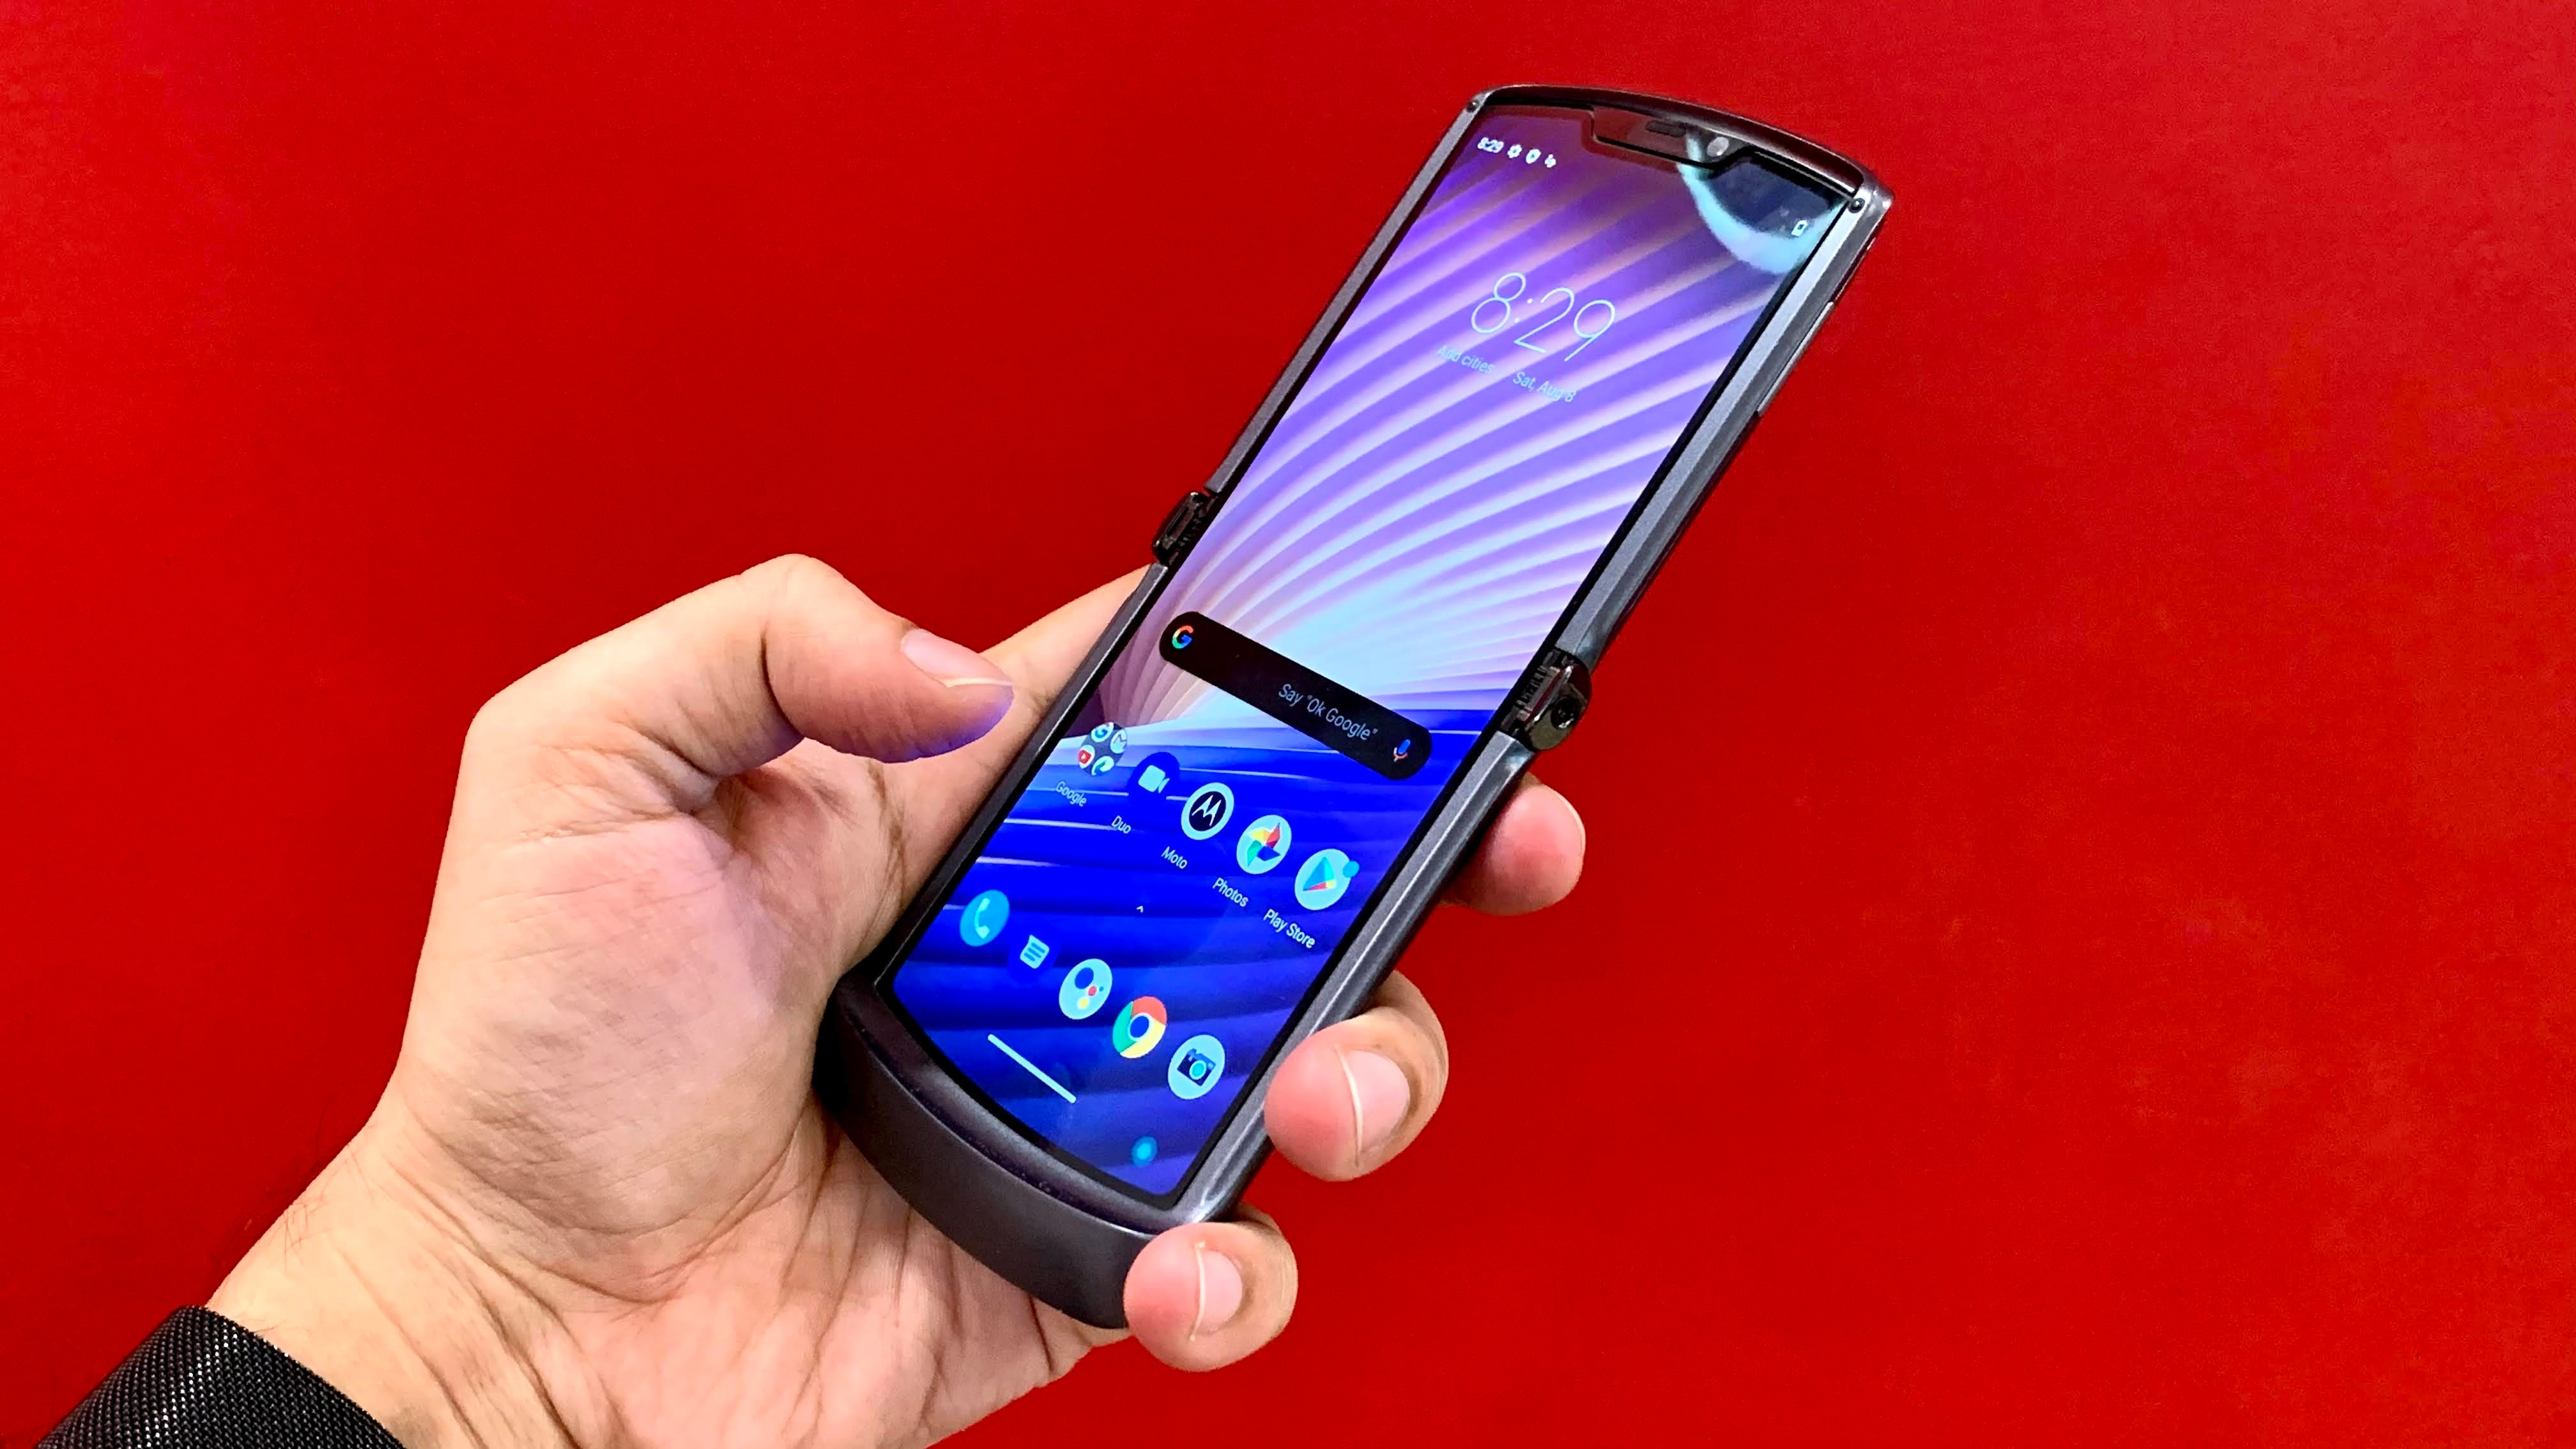 The Razr 5G features a 6.2-inch OLED display with 21:9 aspect ratio.